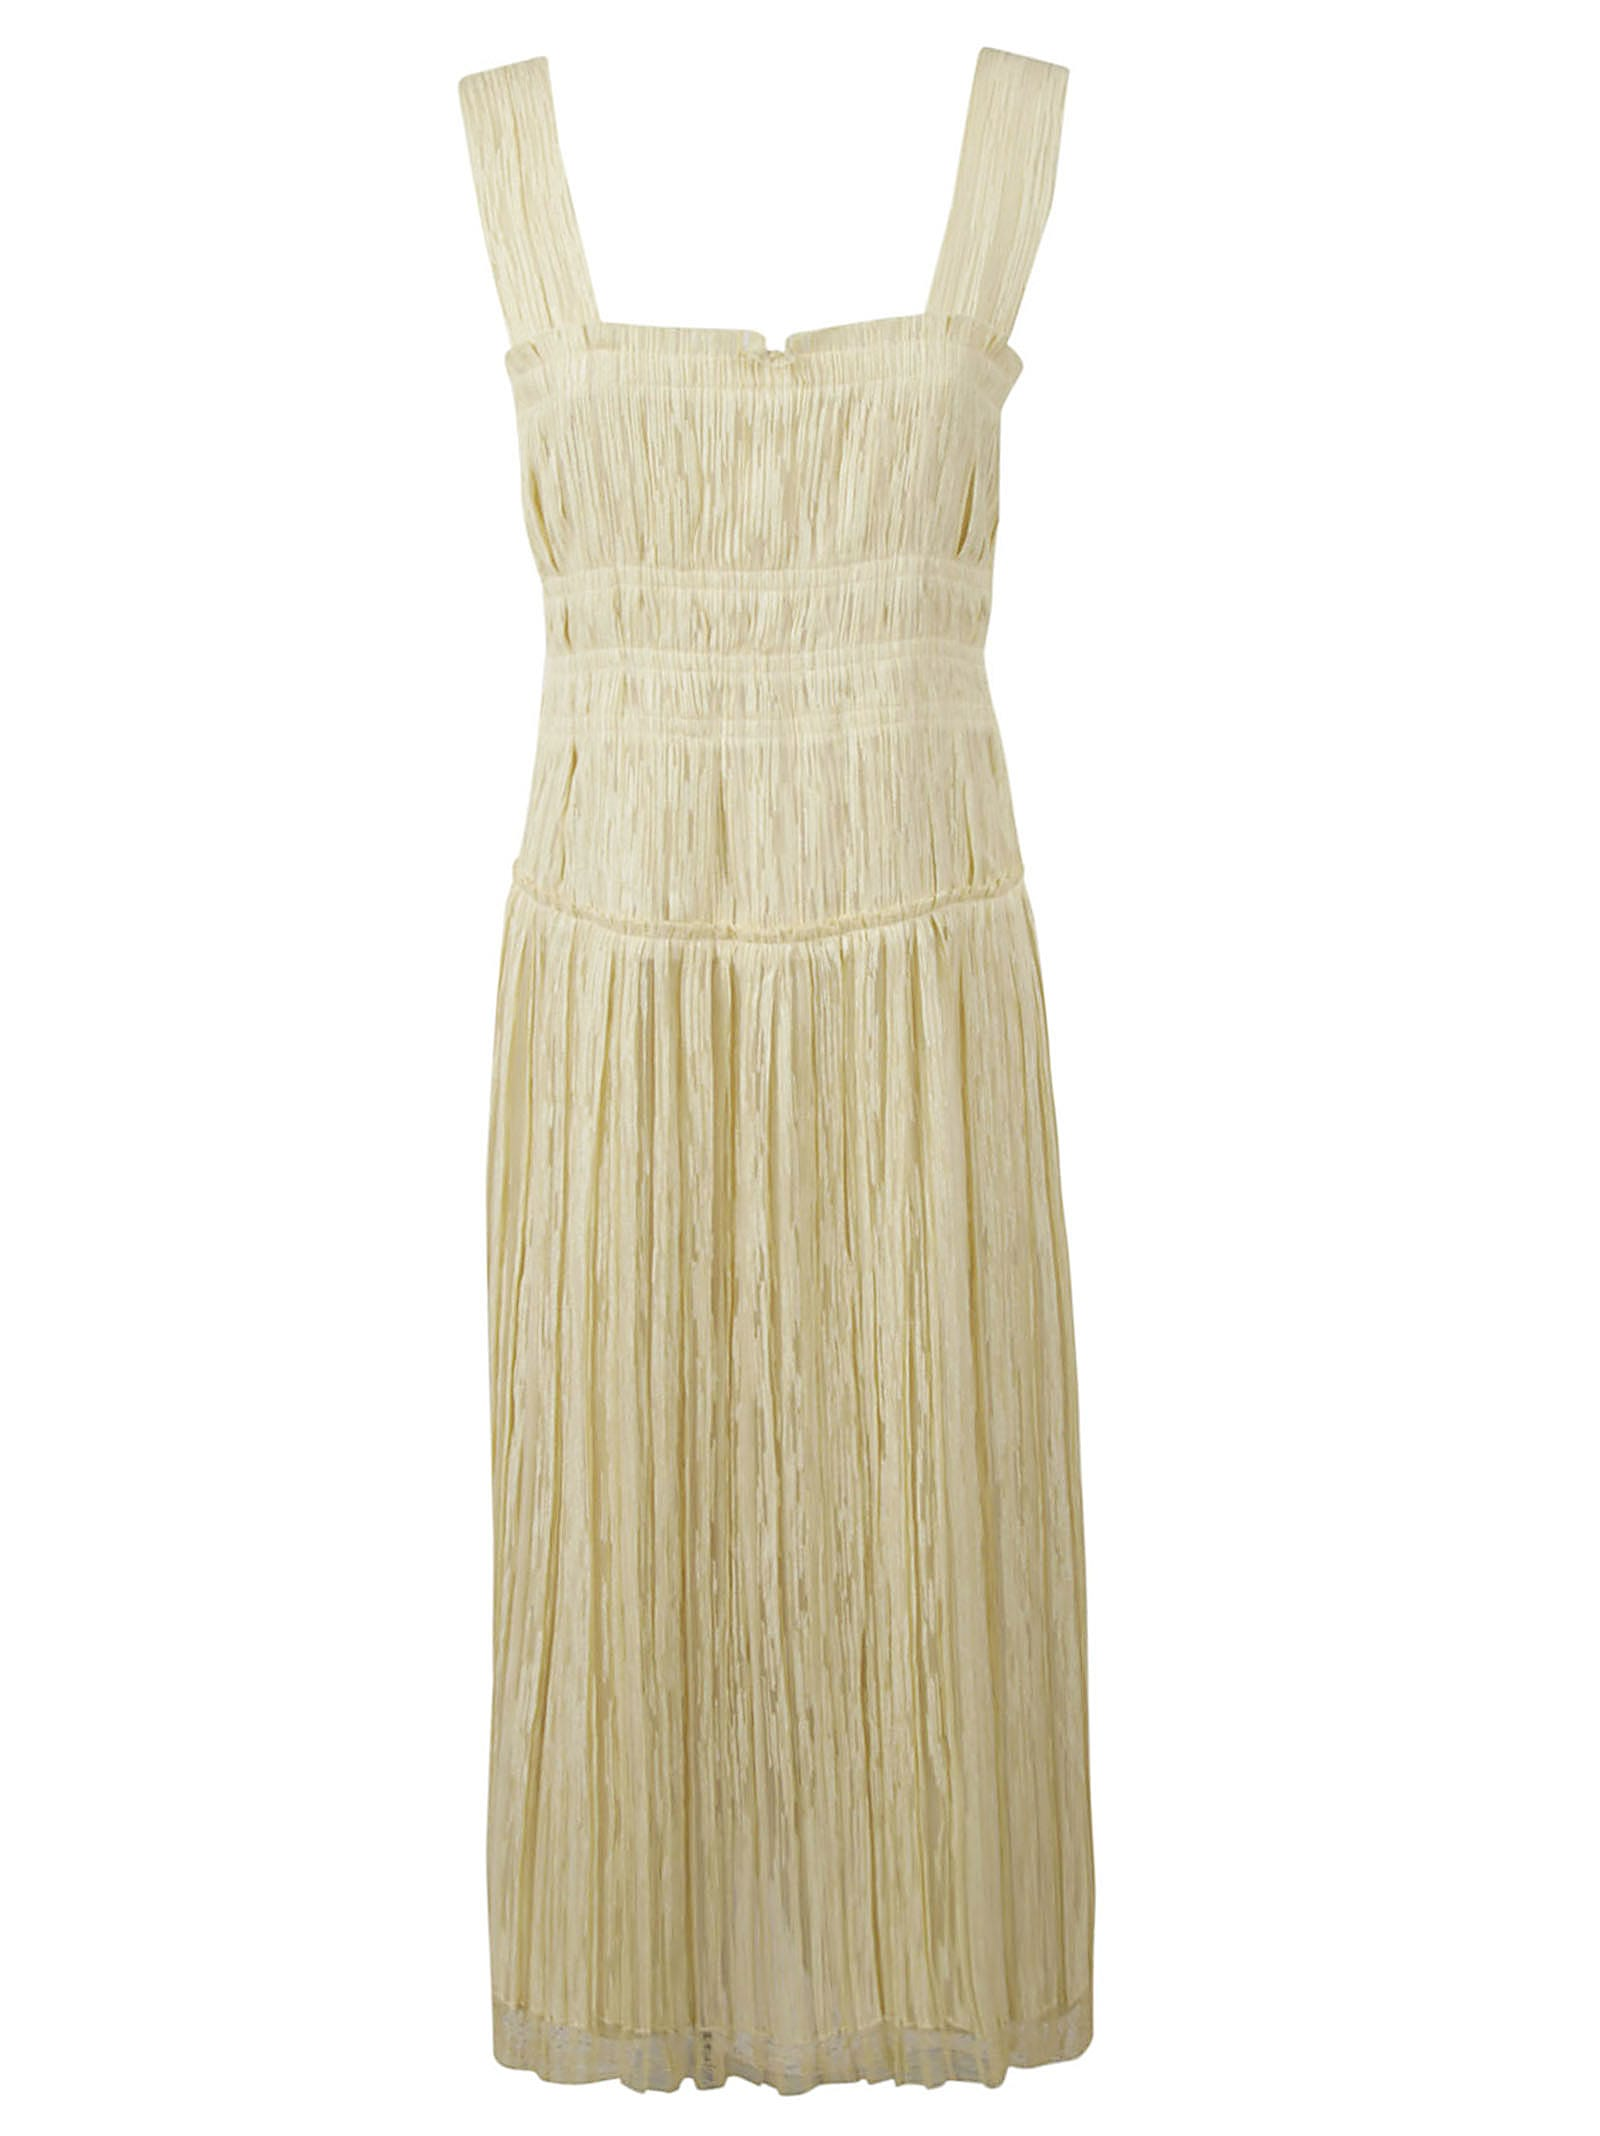 Bottega Veneta Ruched Textured Chiffon Midi Dress